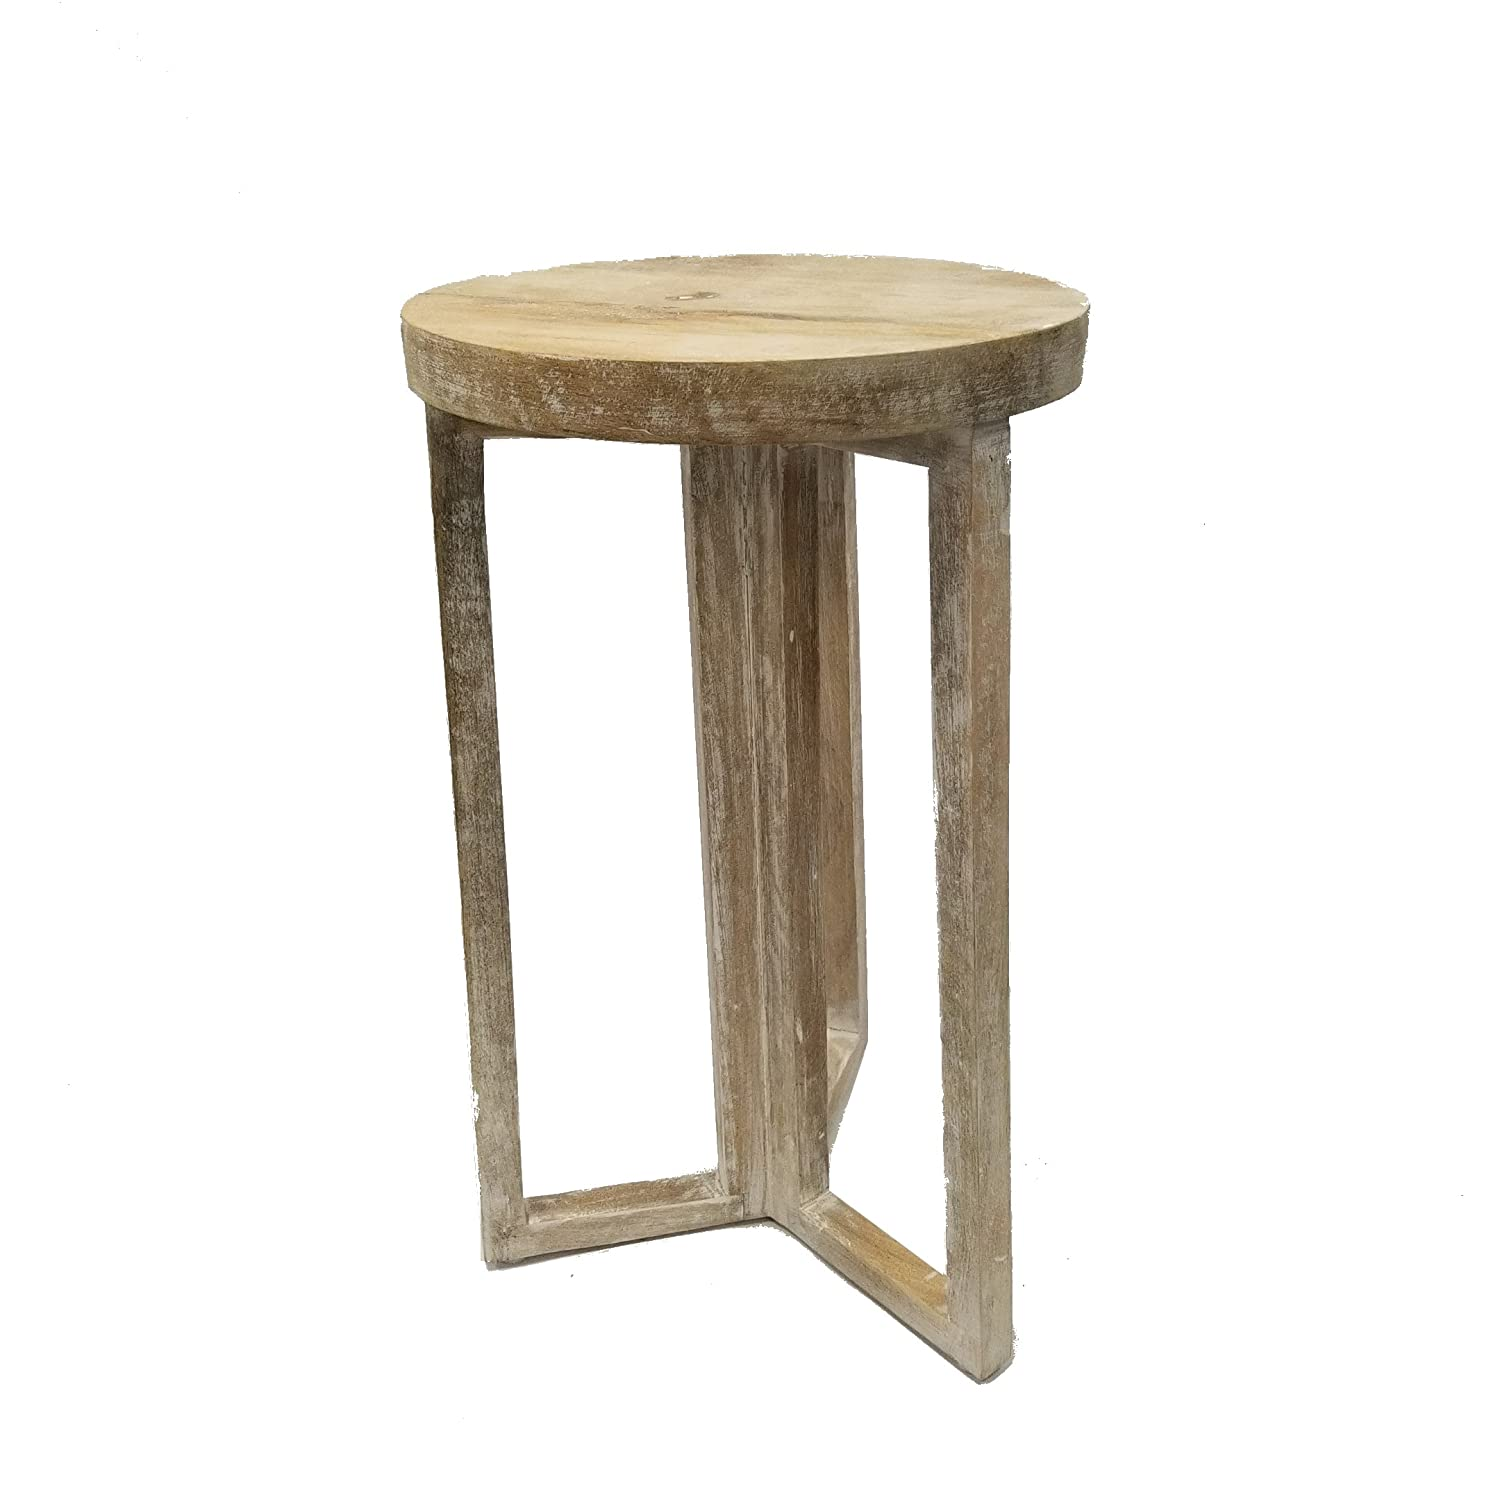 The Urban Port Antique Colonial Brand Stylish Wooden Center Table